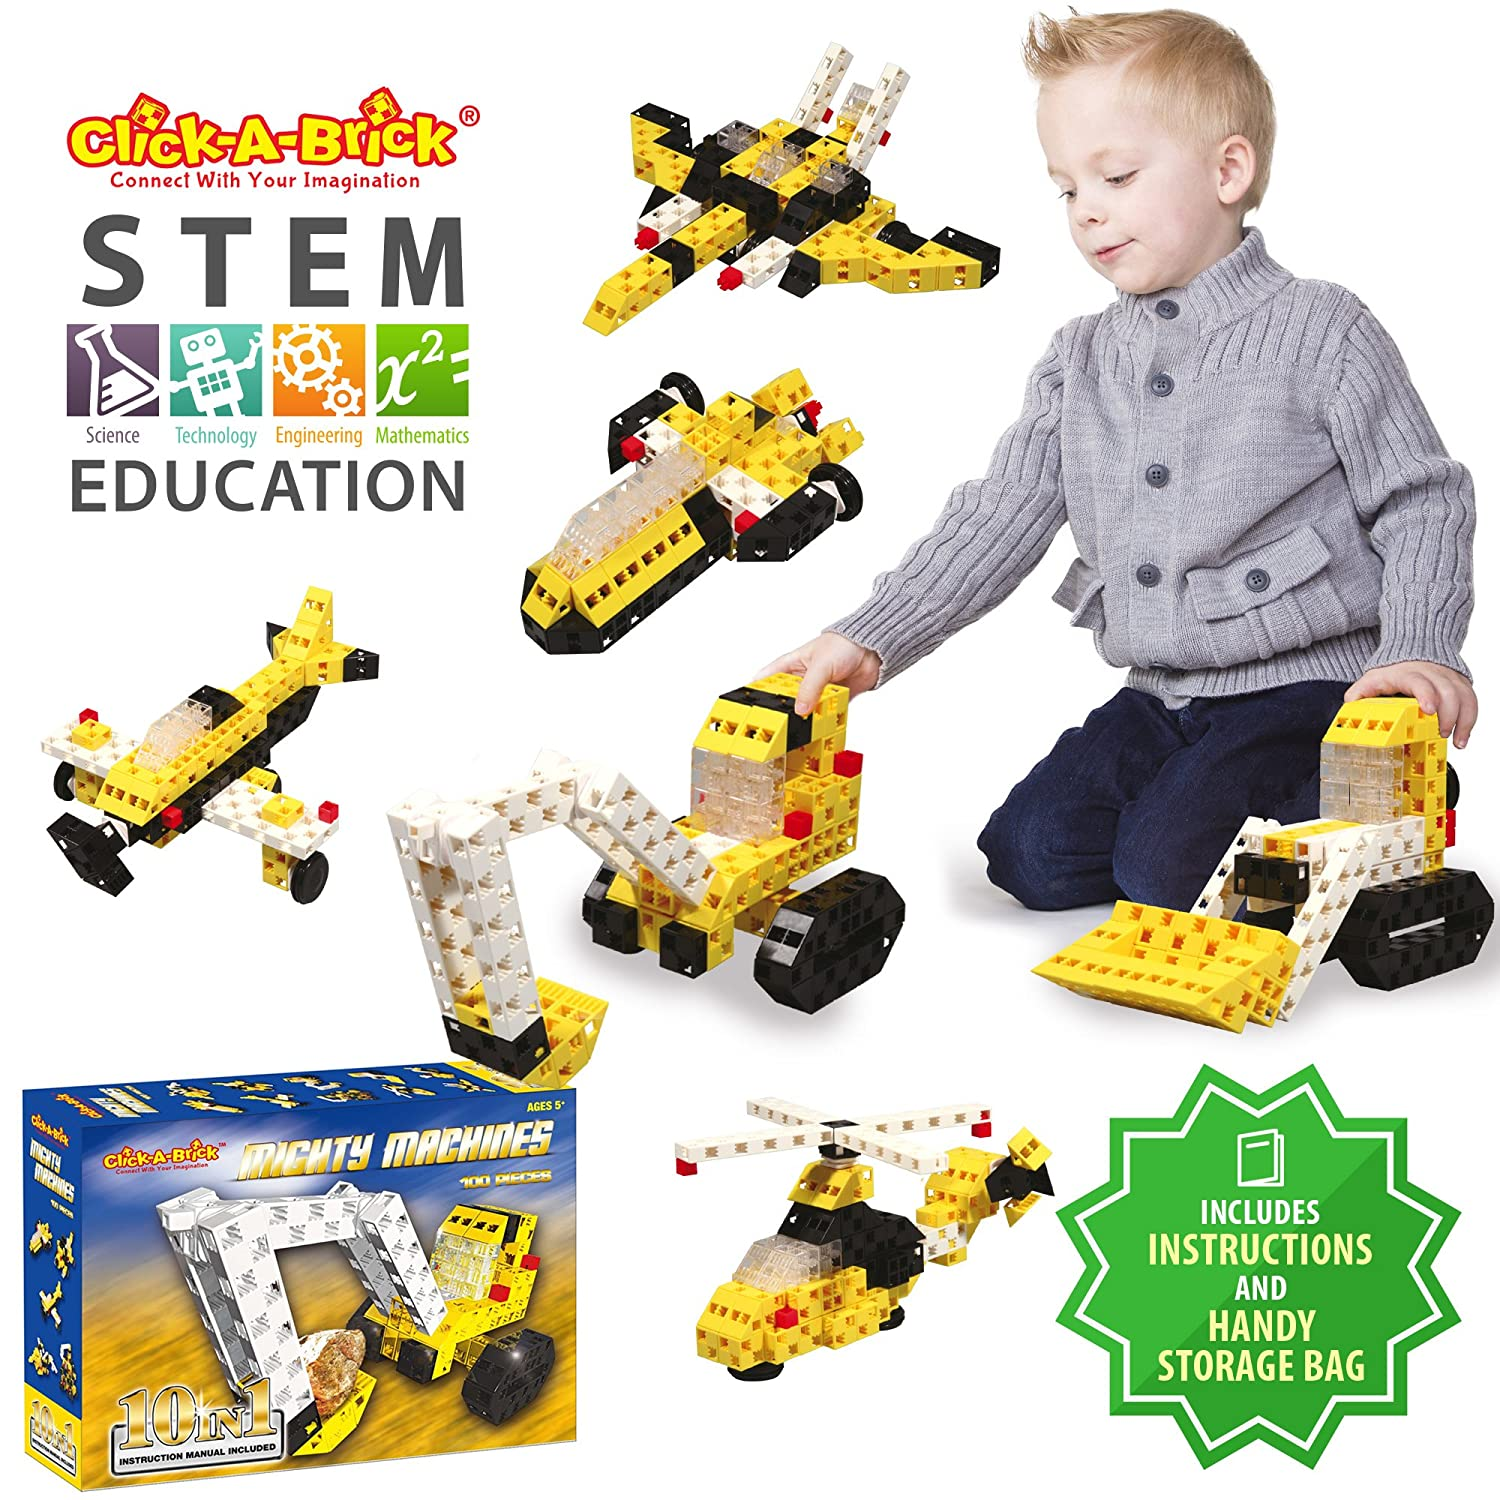 image of a boy playing with STEM building block set for boys in yellow and black color